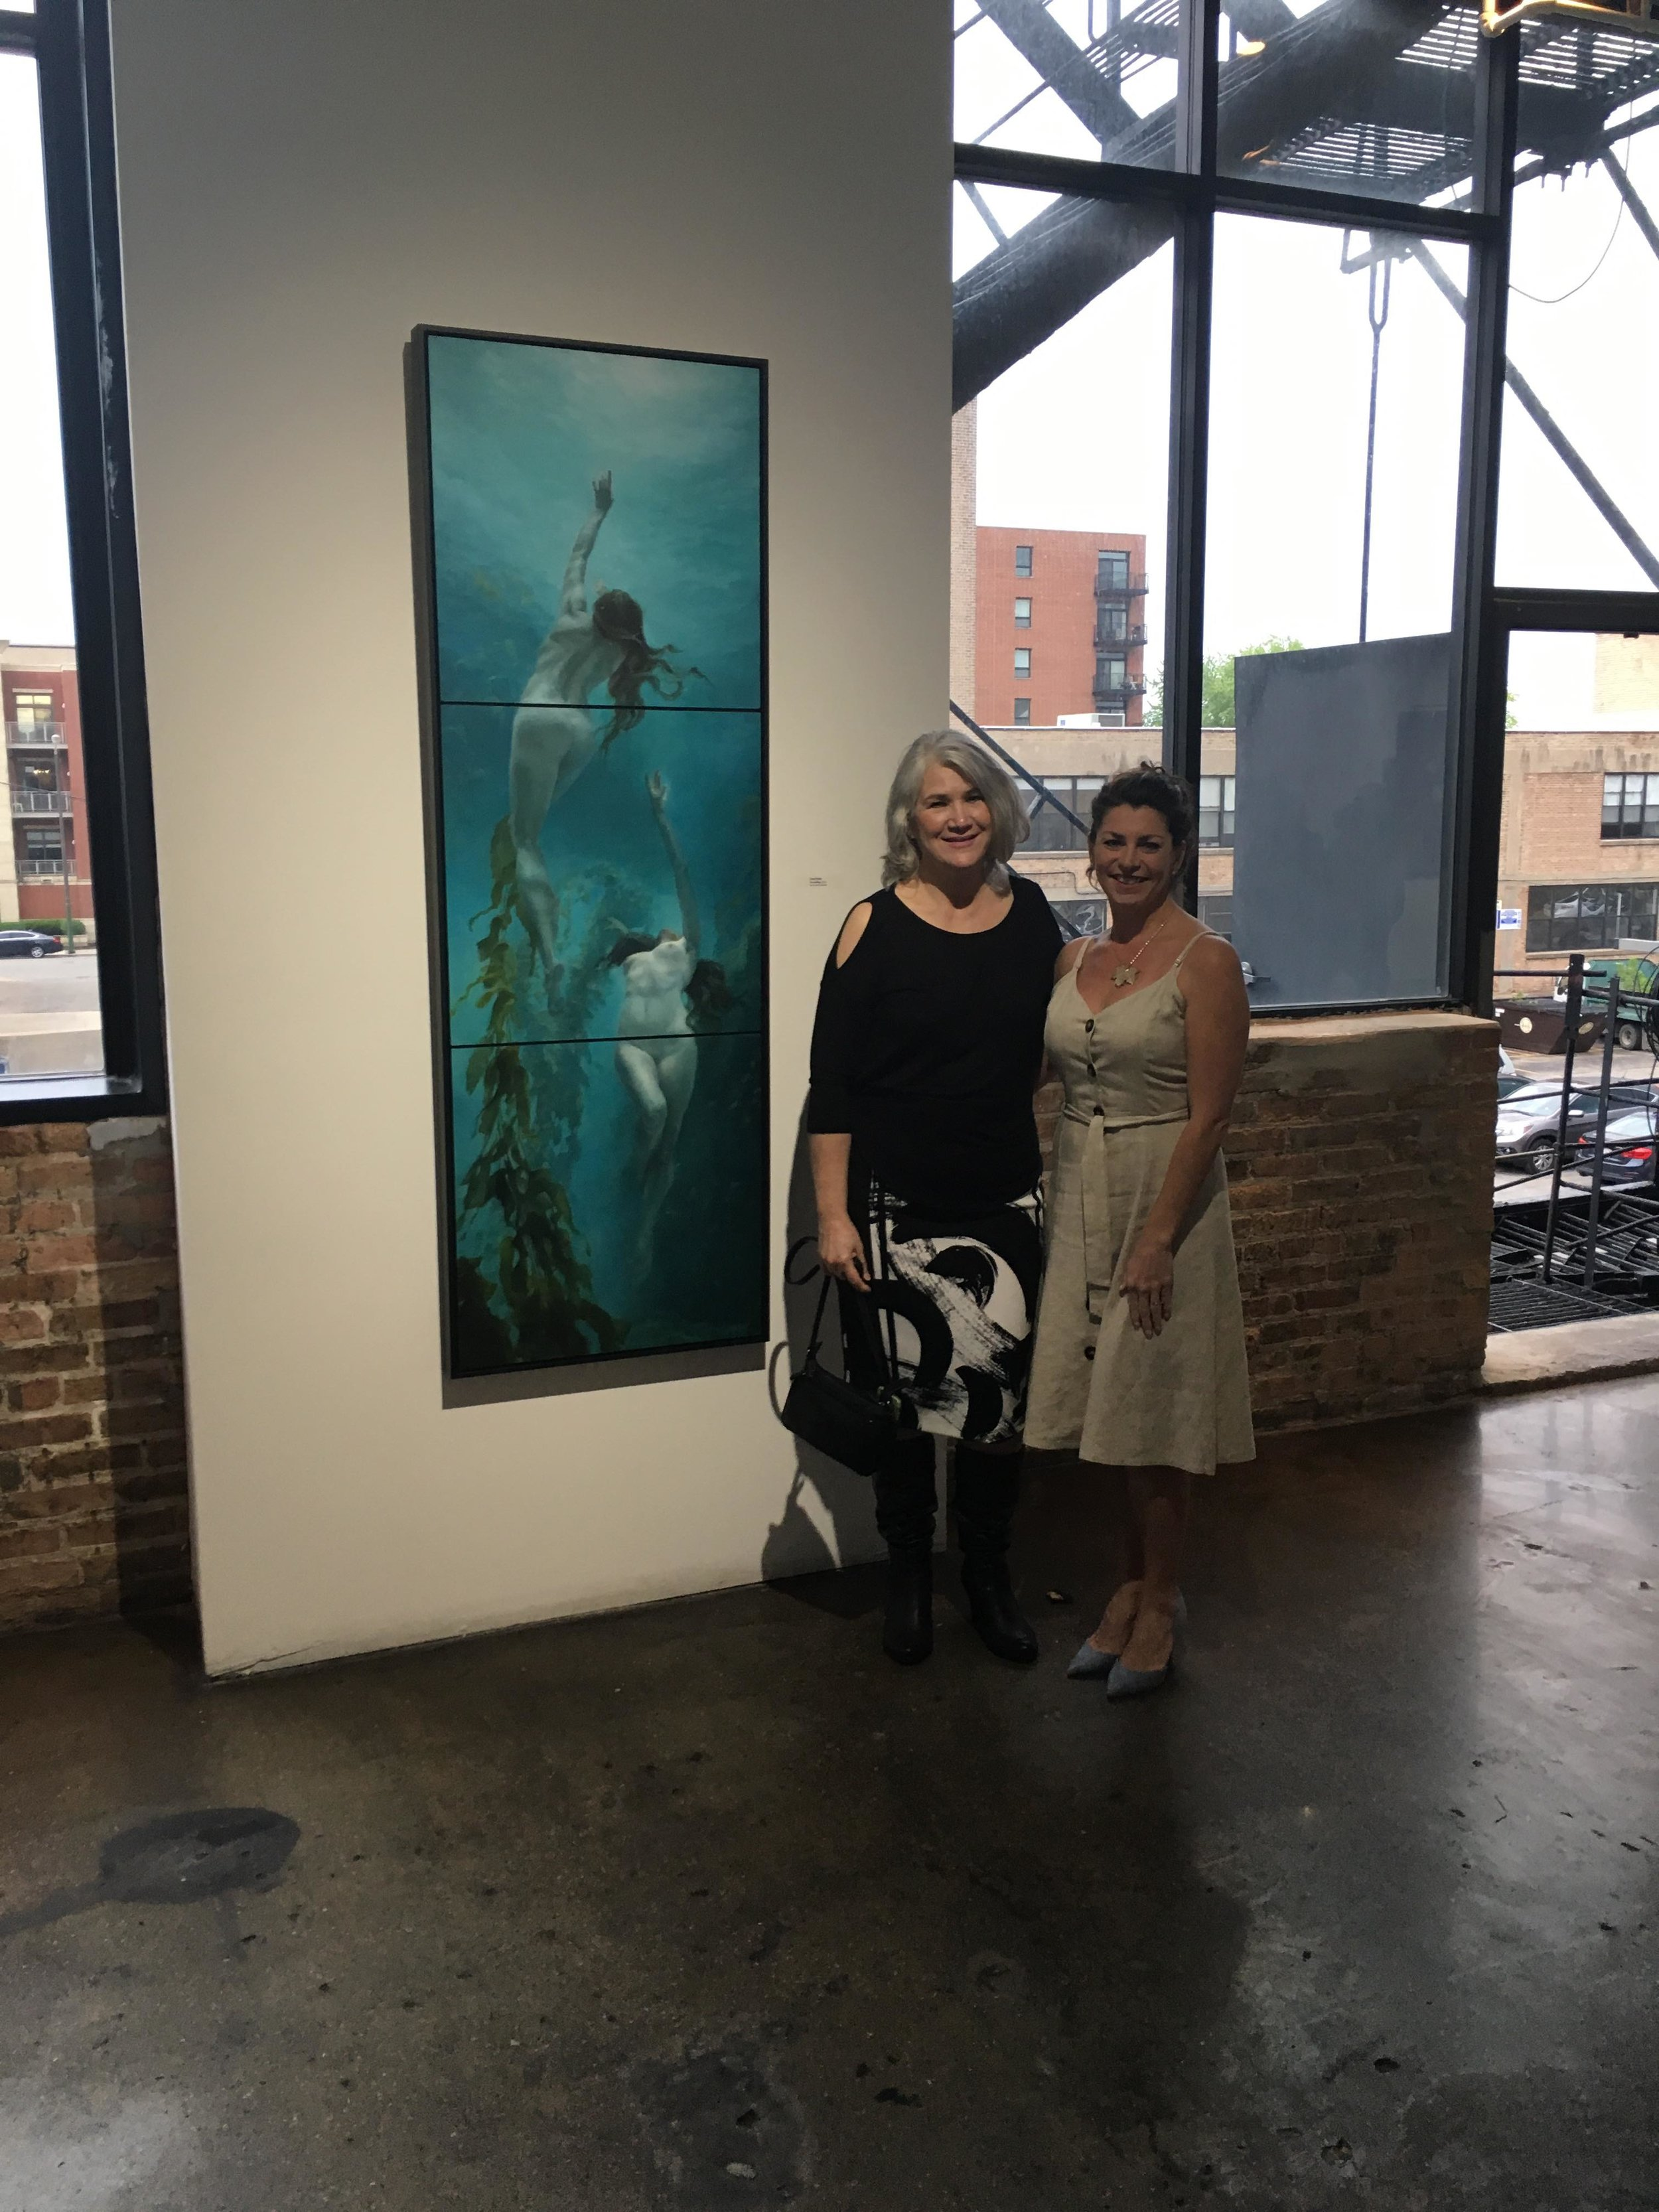 Didi Menendez pictured with Lisa Keay at the Zhou B Art Center for SECONDARY MEANINGS curated by Steven Alan Bennett and Dr. Elaine Schmidt.